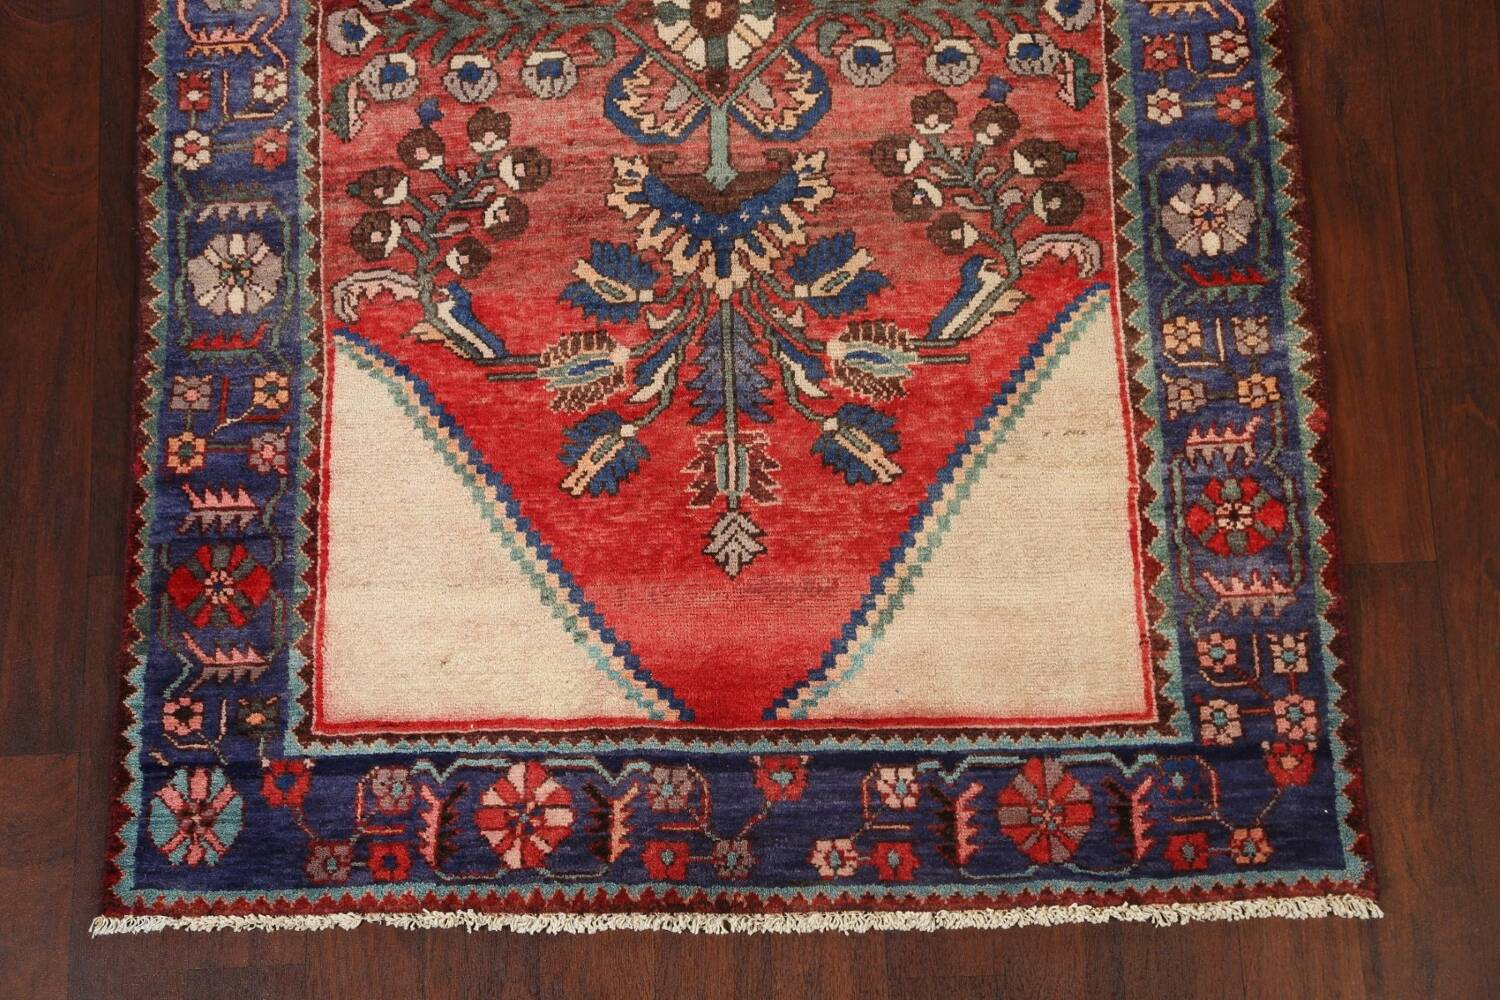 Antique Floral Malayer Persian Area Rug 4x7 image 5